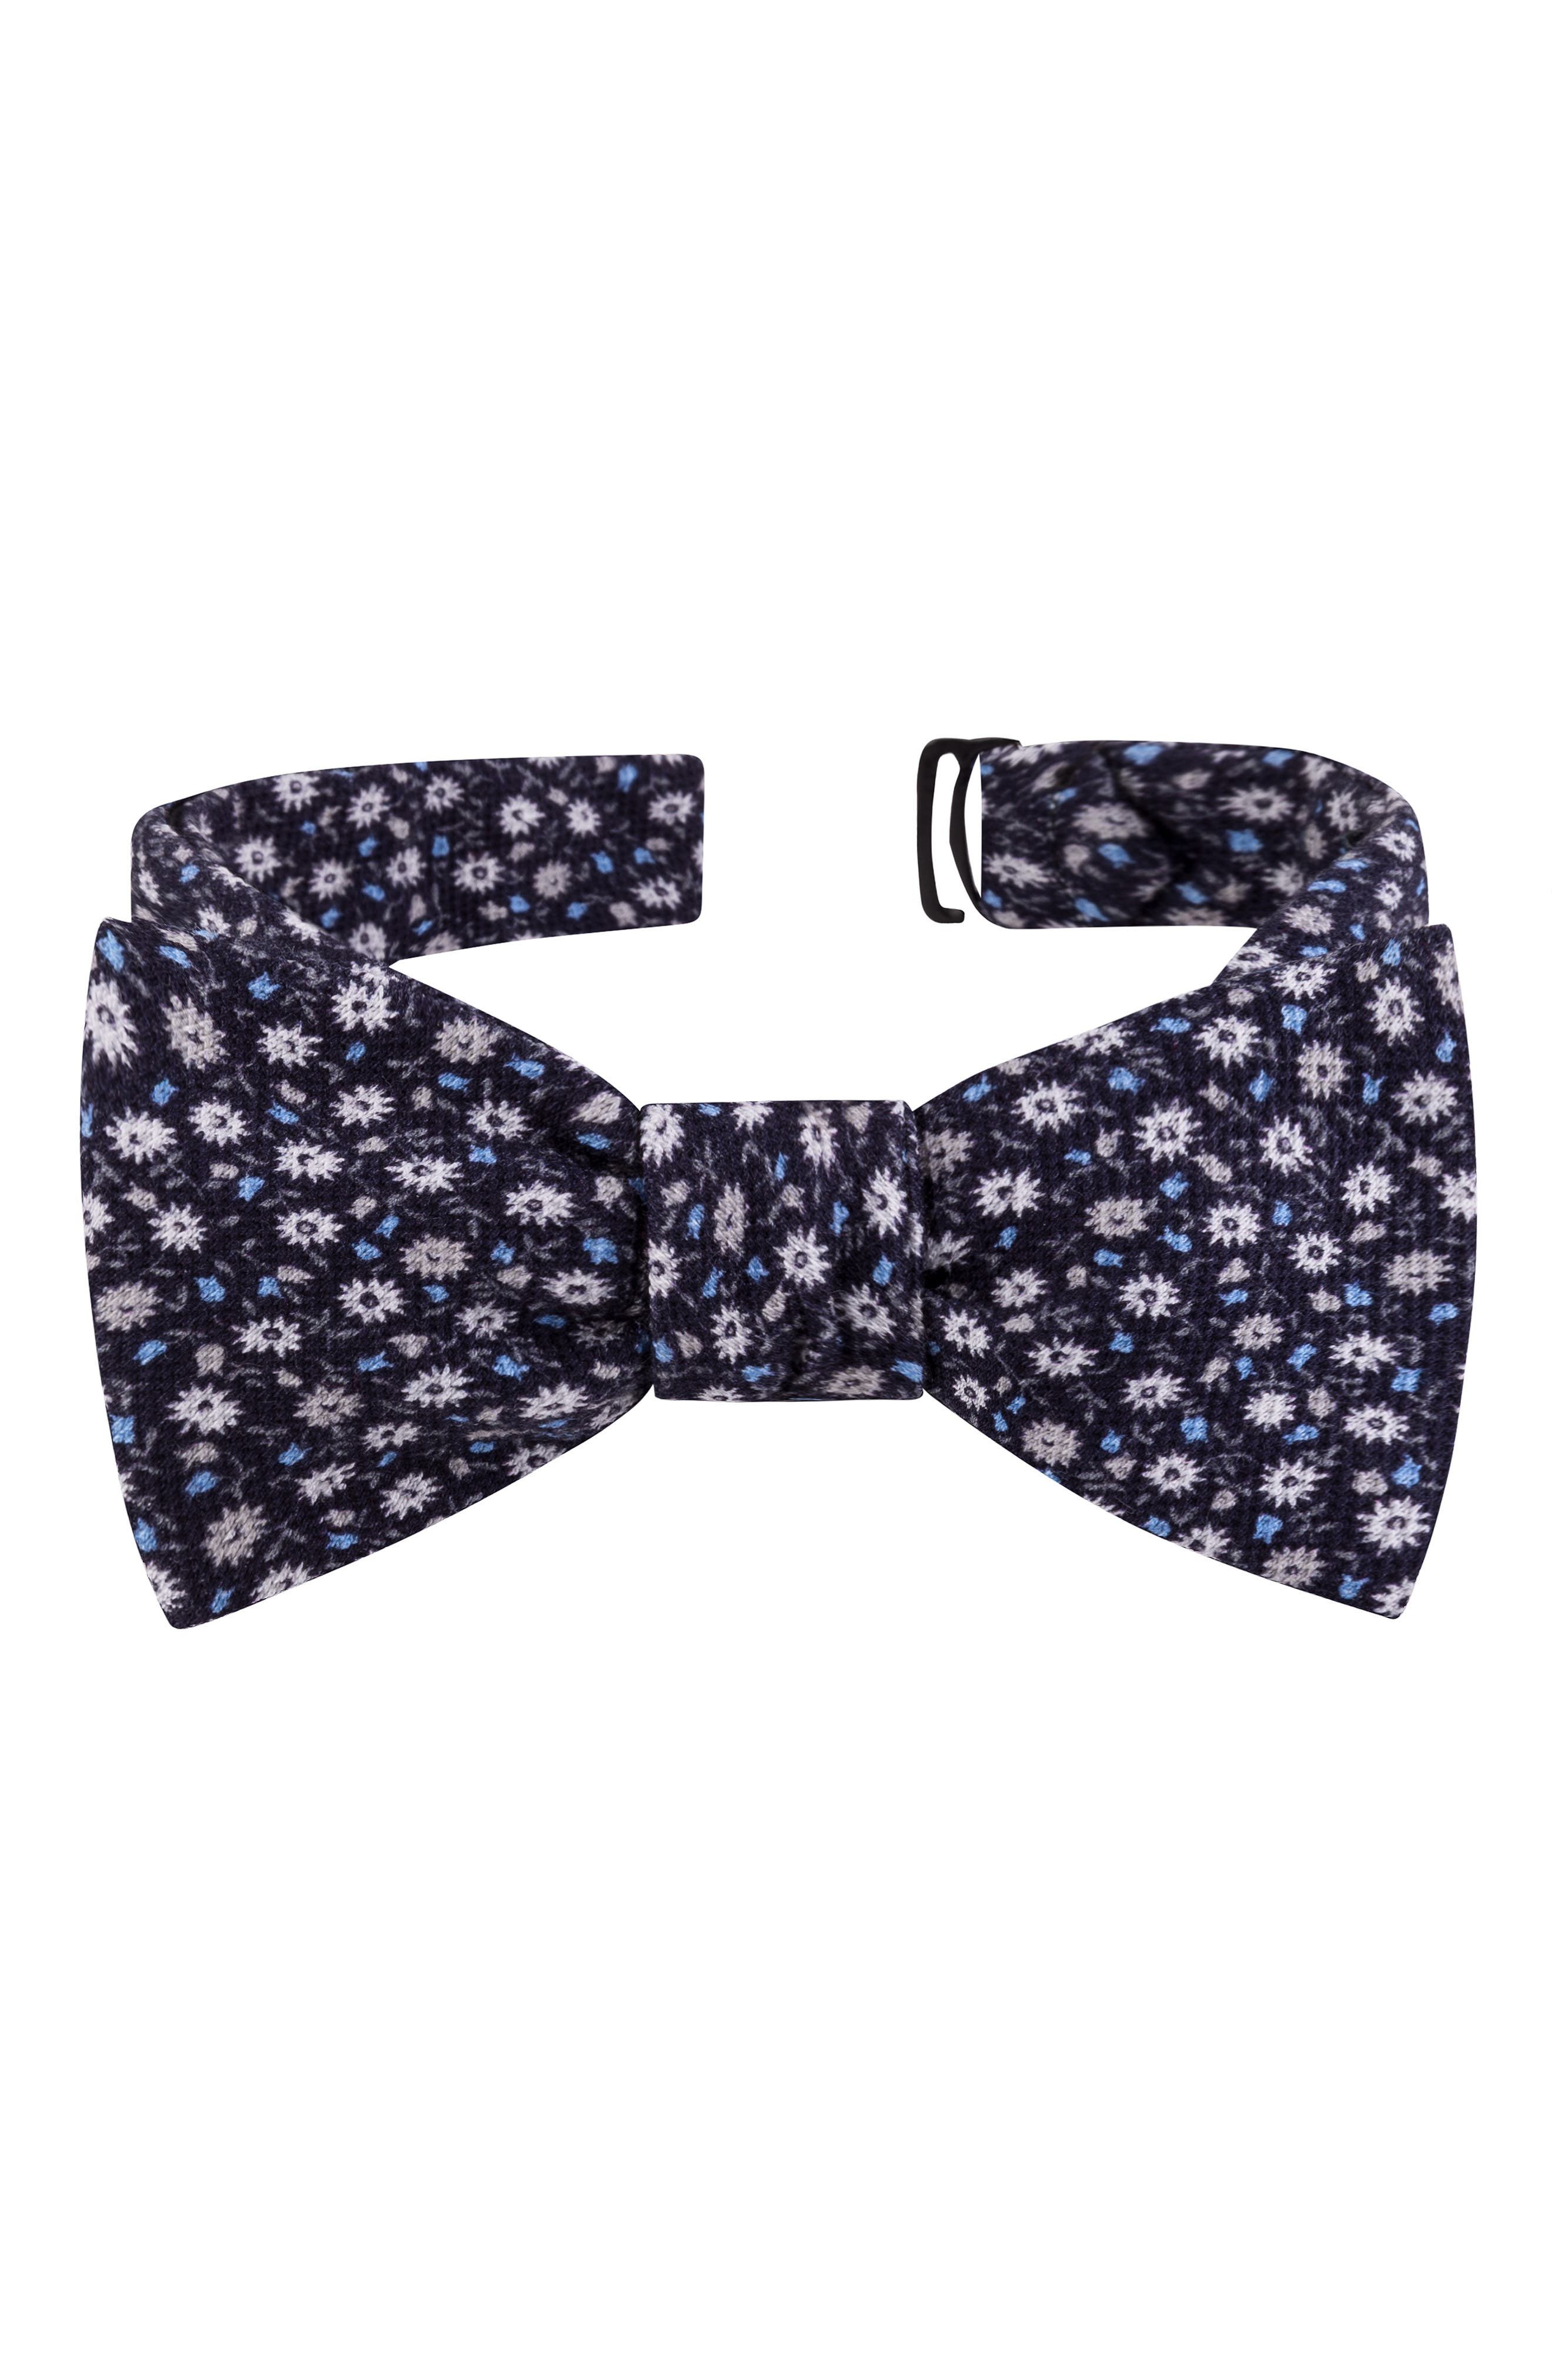 TED BAKER LONDON Small Flower Silk Bow Tie, Main, color, BLACK